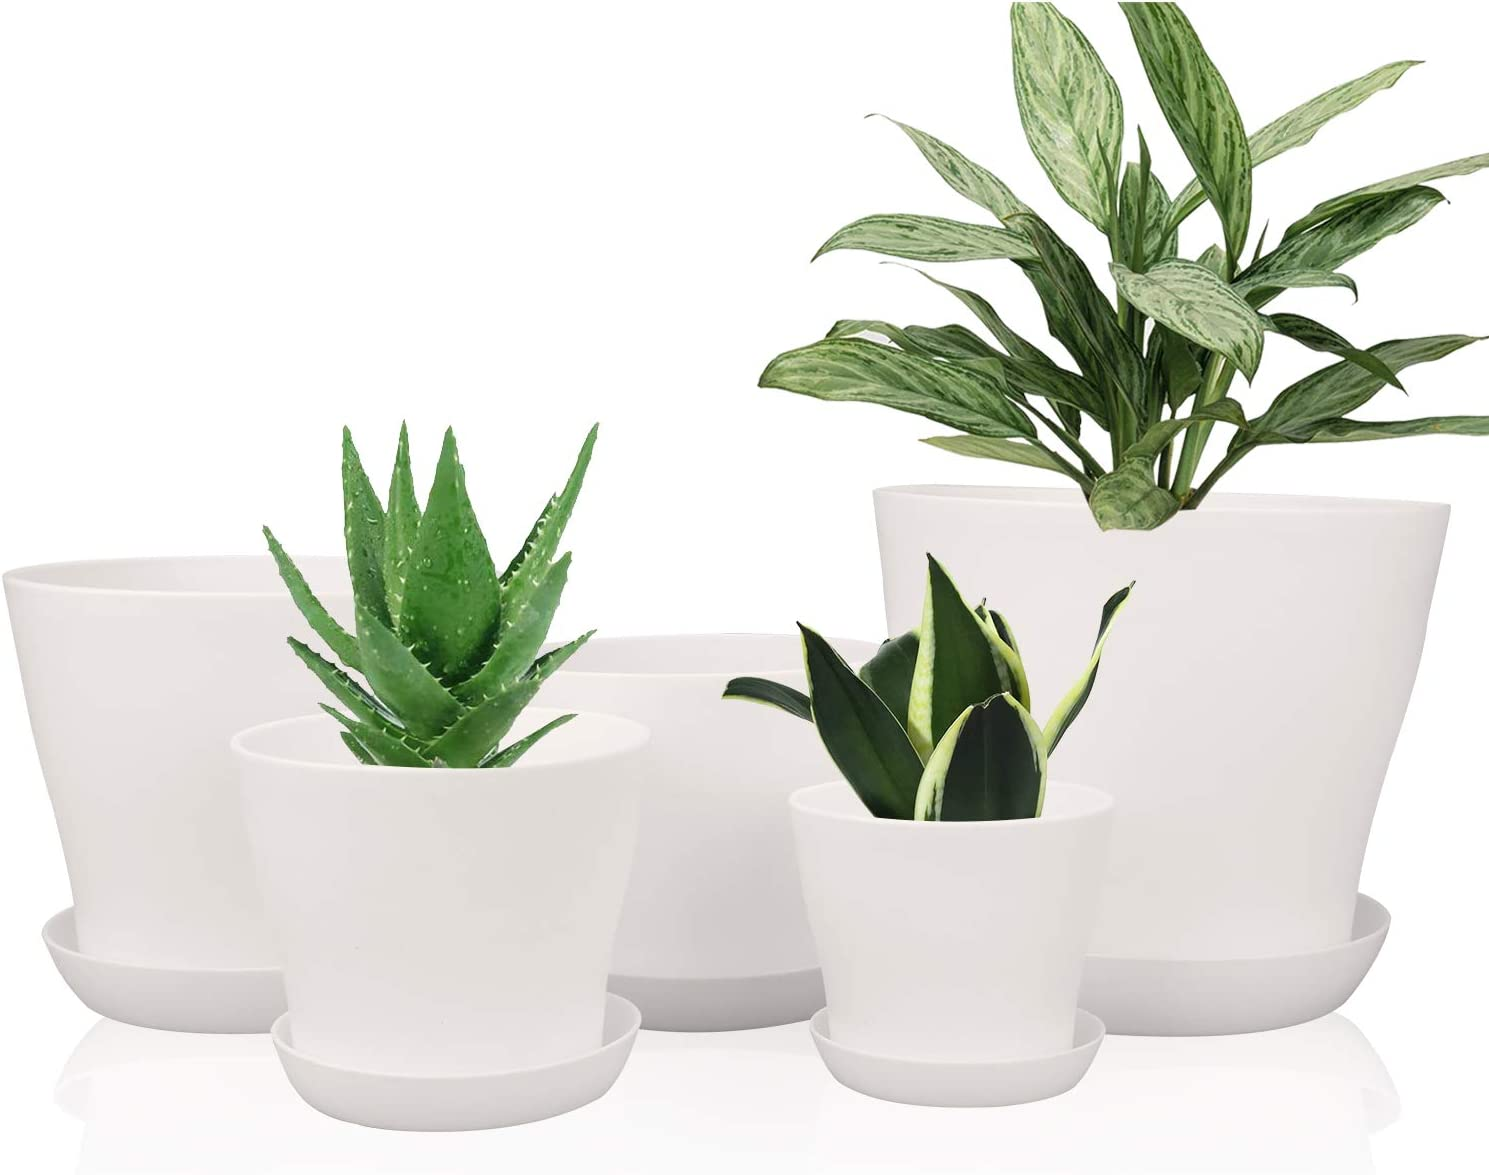 Plastic Plant Pots with Drainage Holes, Ufrount Gardening Containers, Flower Pots, Perfect for Garden/Yard/Kitchen/Flower/Succulents - Set of 10 (White)